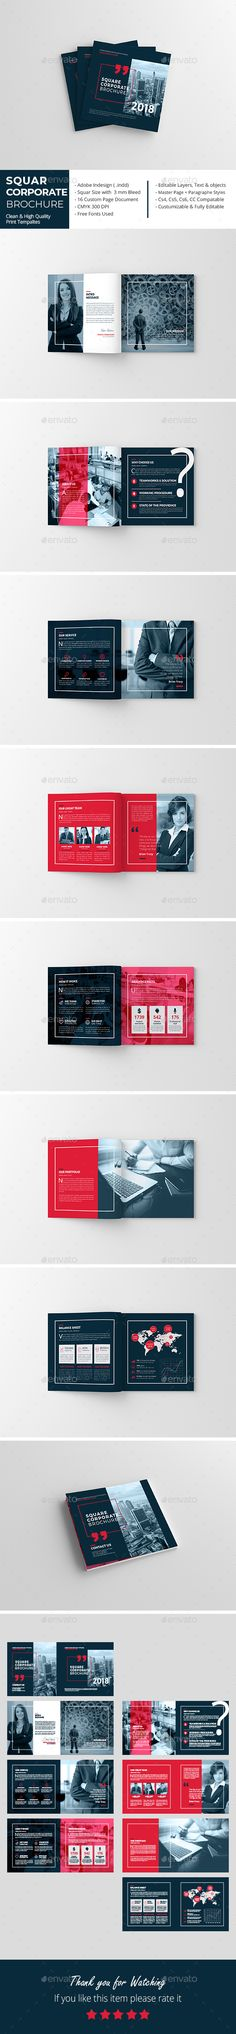 Squar Corporate Brochure Template InDesign INDD - 16 Pages